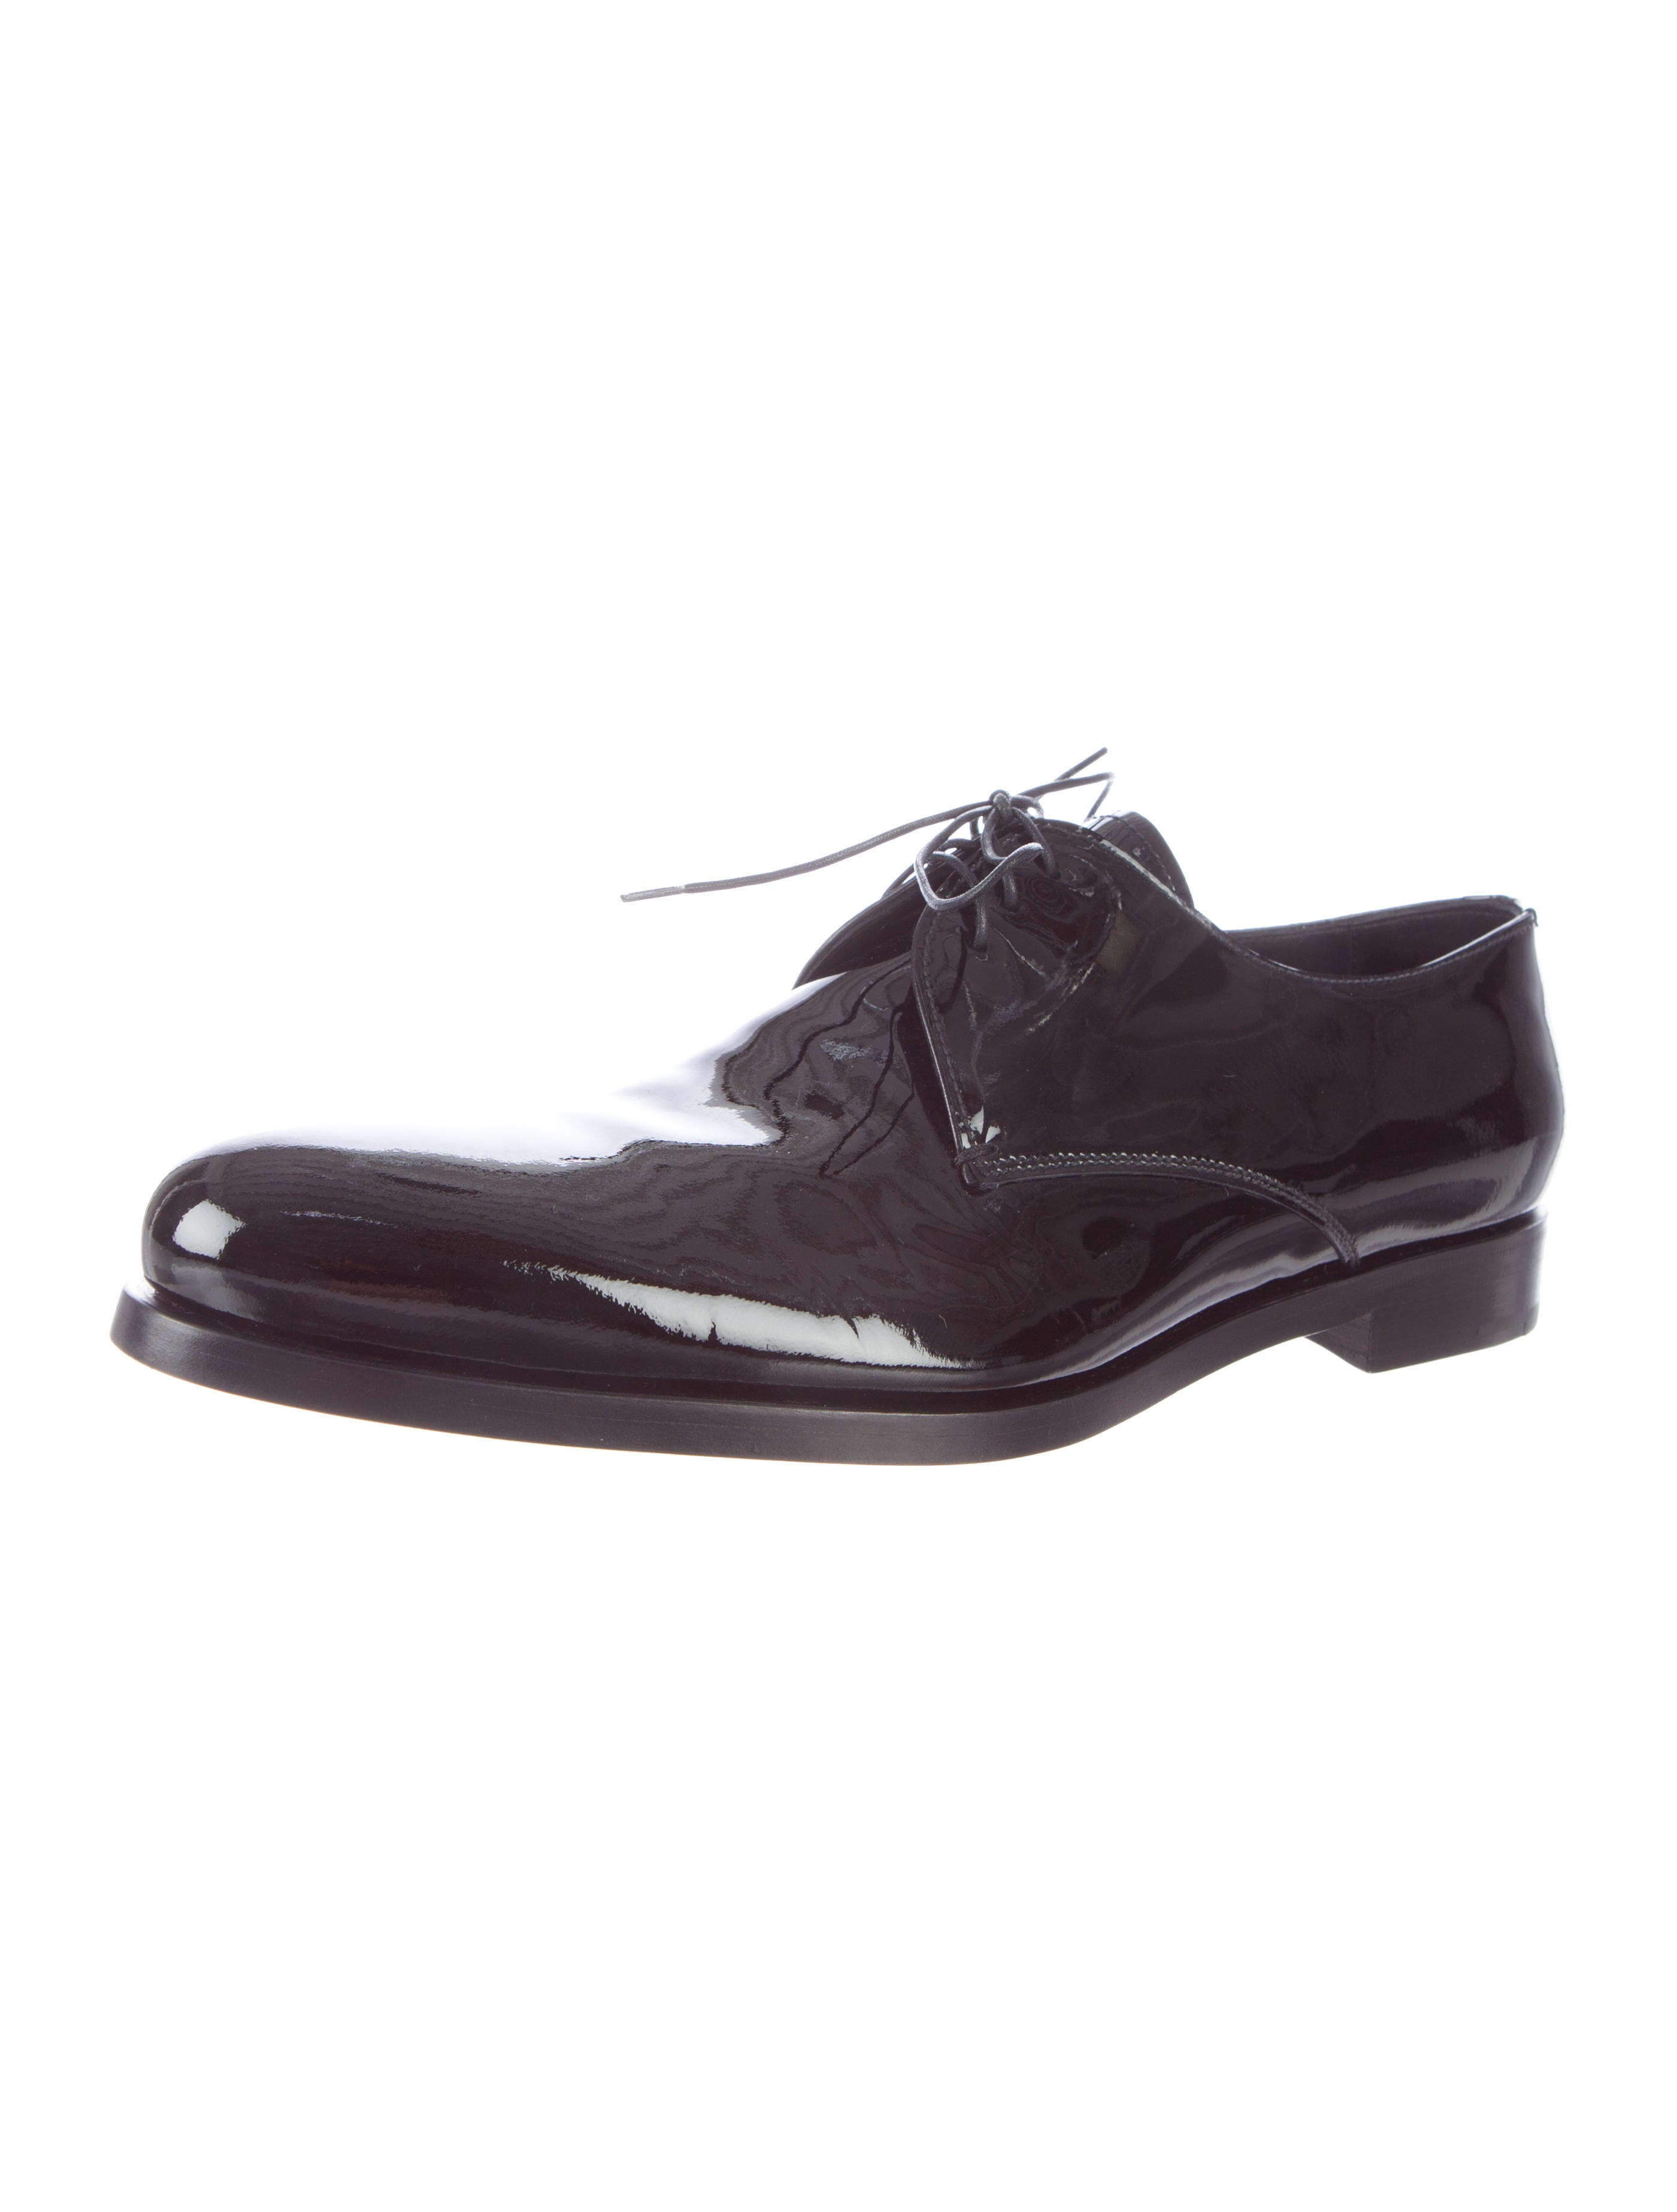 prada patent leather derby shoes shoes pra77790 the